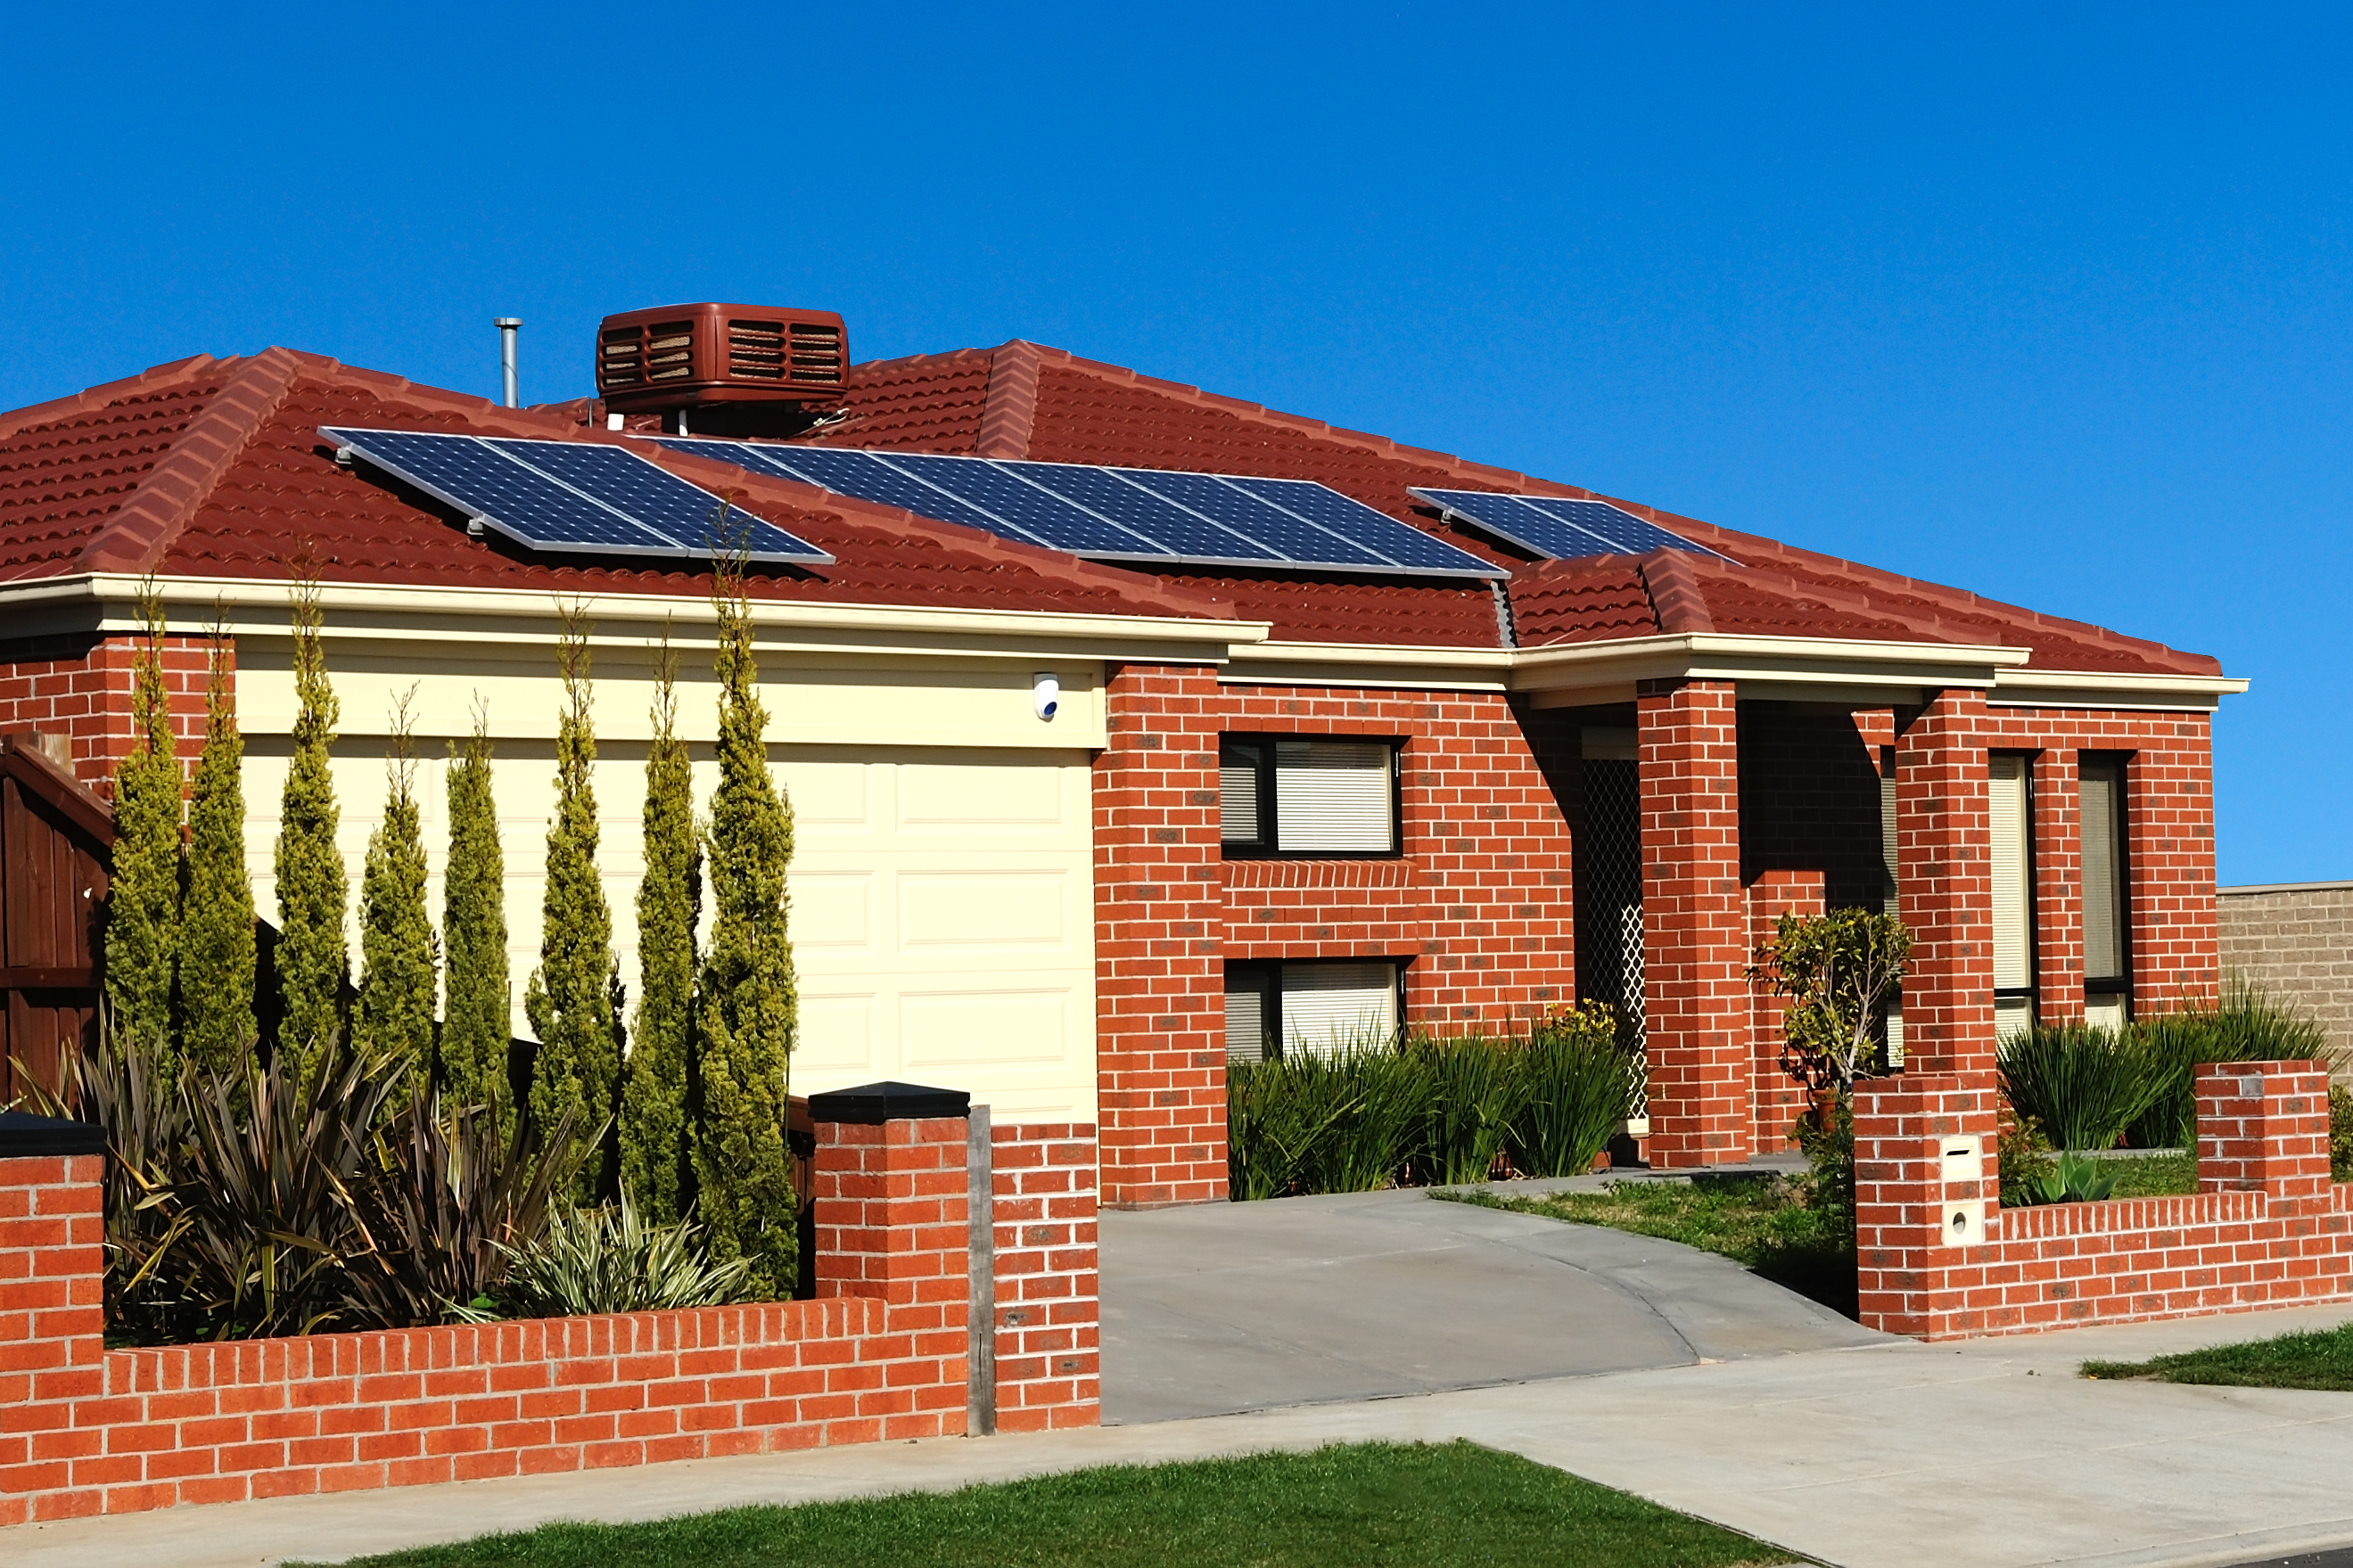 Grid-Tied, Off-Grid, or Hybrid: Which Solar System Is for You?